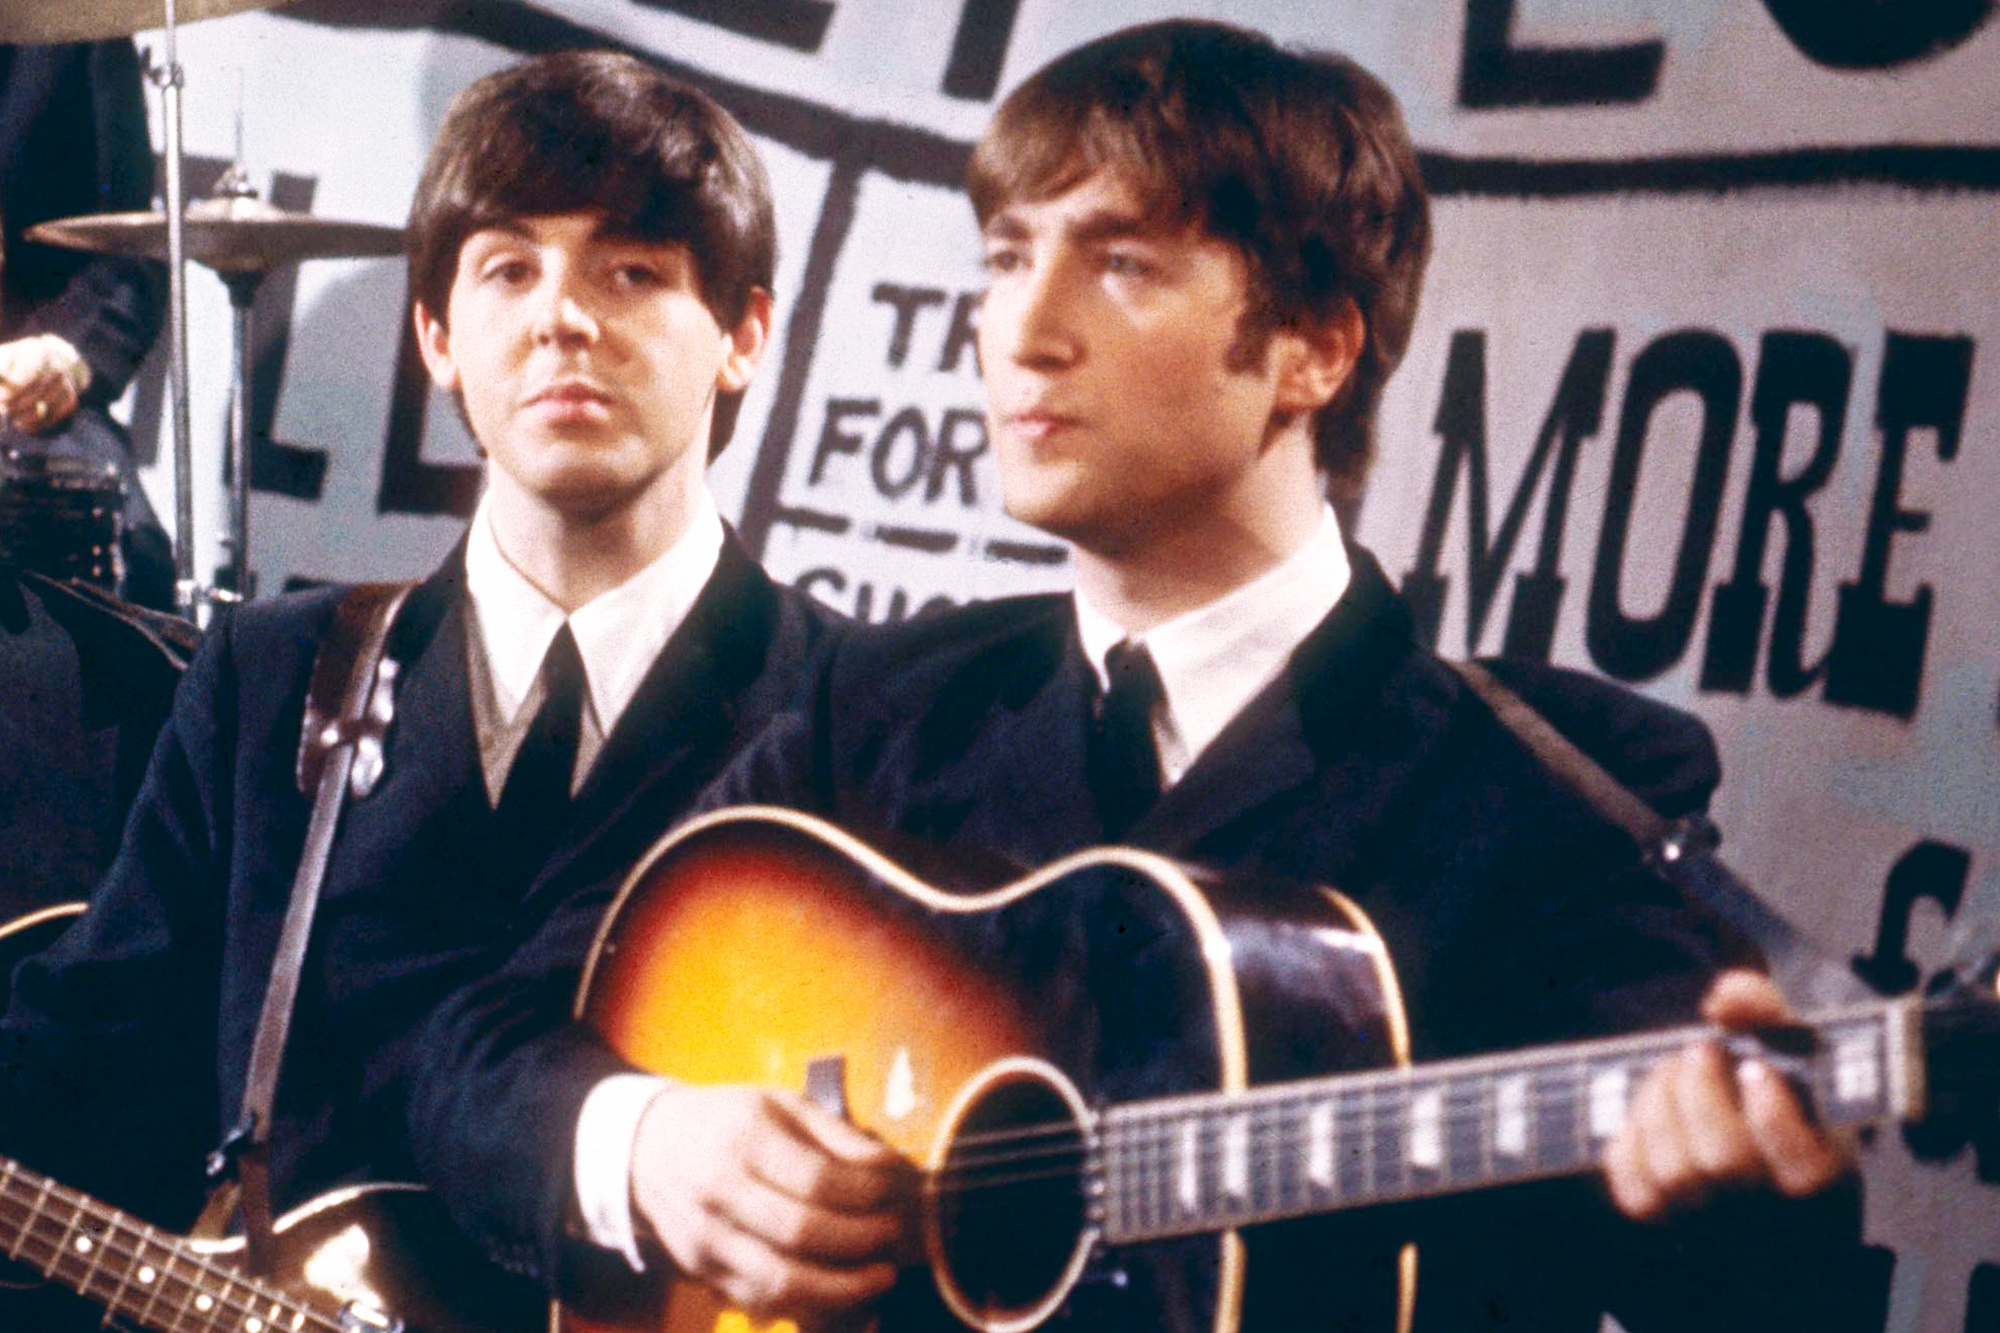 Paul McCartney and John Lennon of the The Beatles perform on Granada Television's Late Scene Extra programme at Granada television studios in Manchester, England on November 25th 1963.